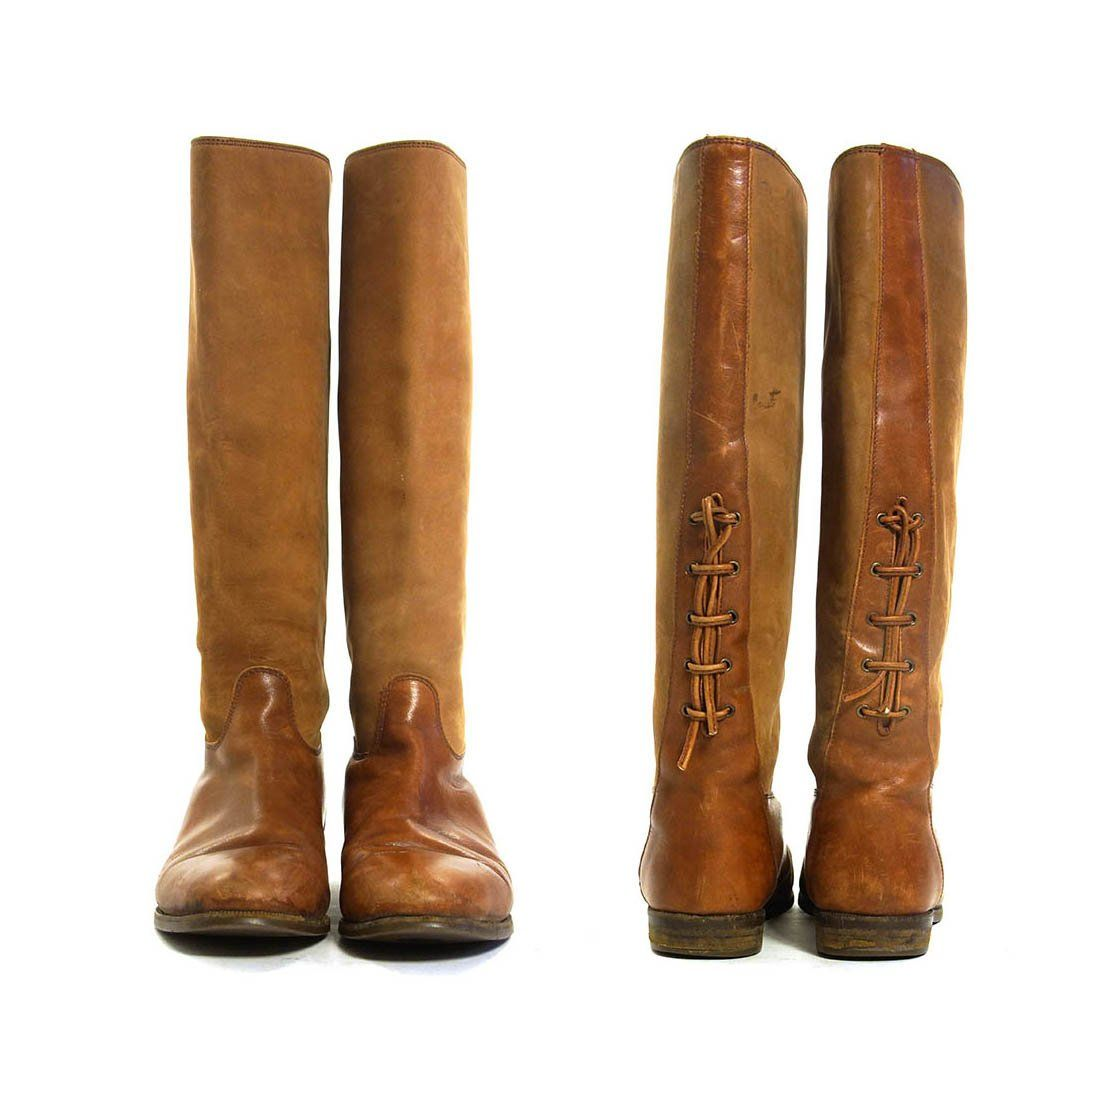 30078b389bb Brown Leather Riding Boots Vintage 90s Timberland Knee High ...